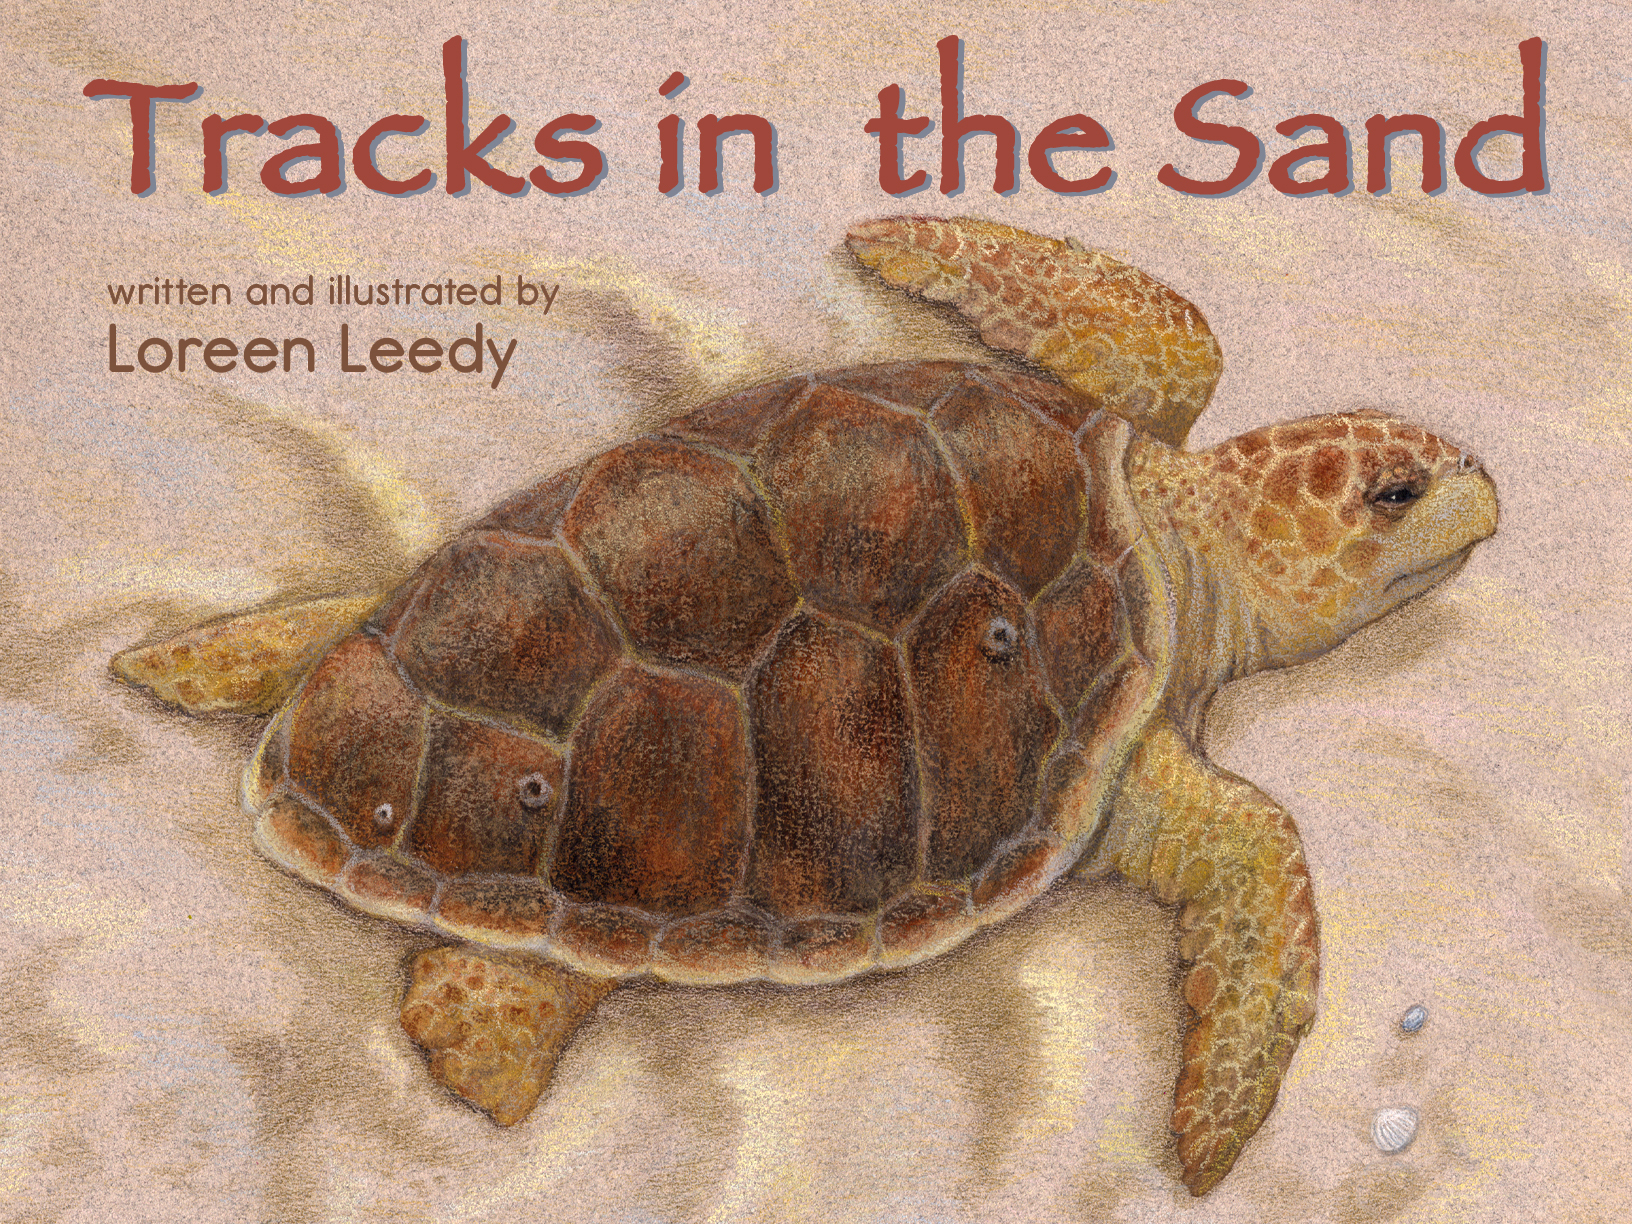 Click cover image to view a bundle of sea turtle life cycle educational resources including the digital edition of  Tracks in the Sand!